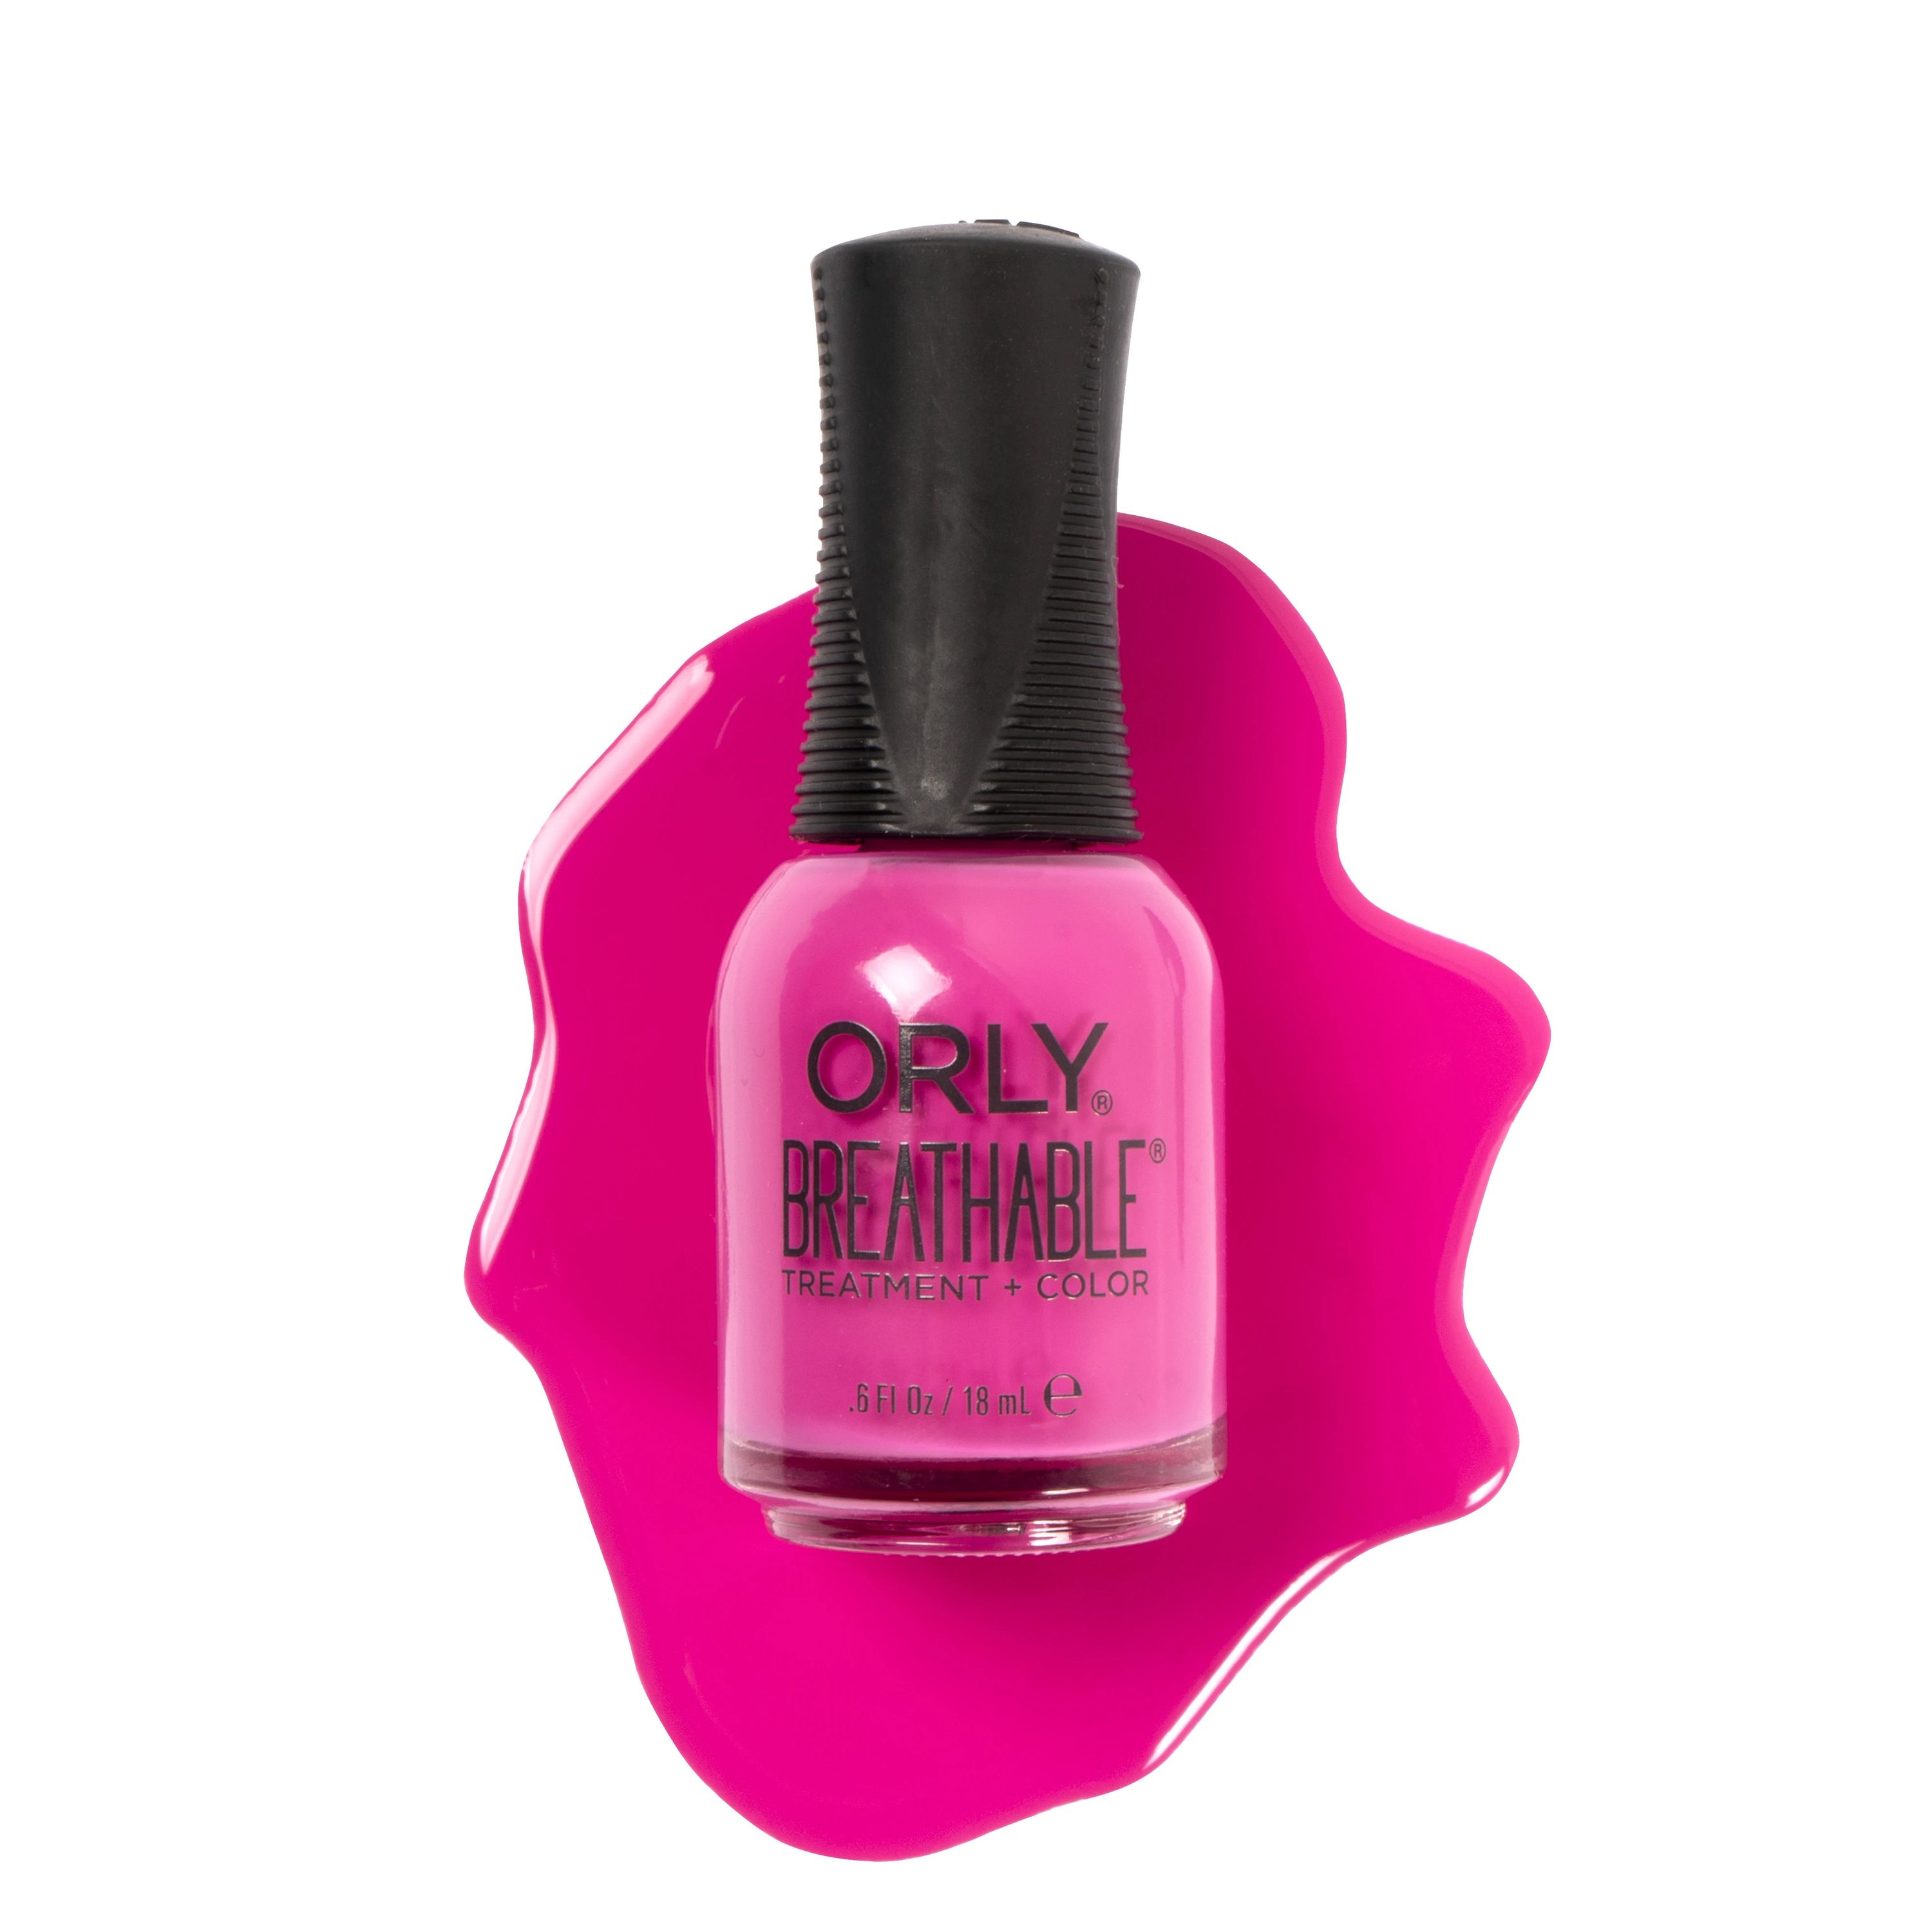 ORLY Breathable - Nagellack - Berry Intuitive, 18 ML